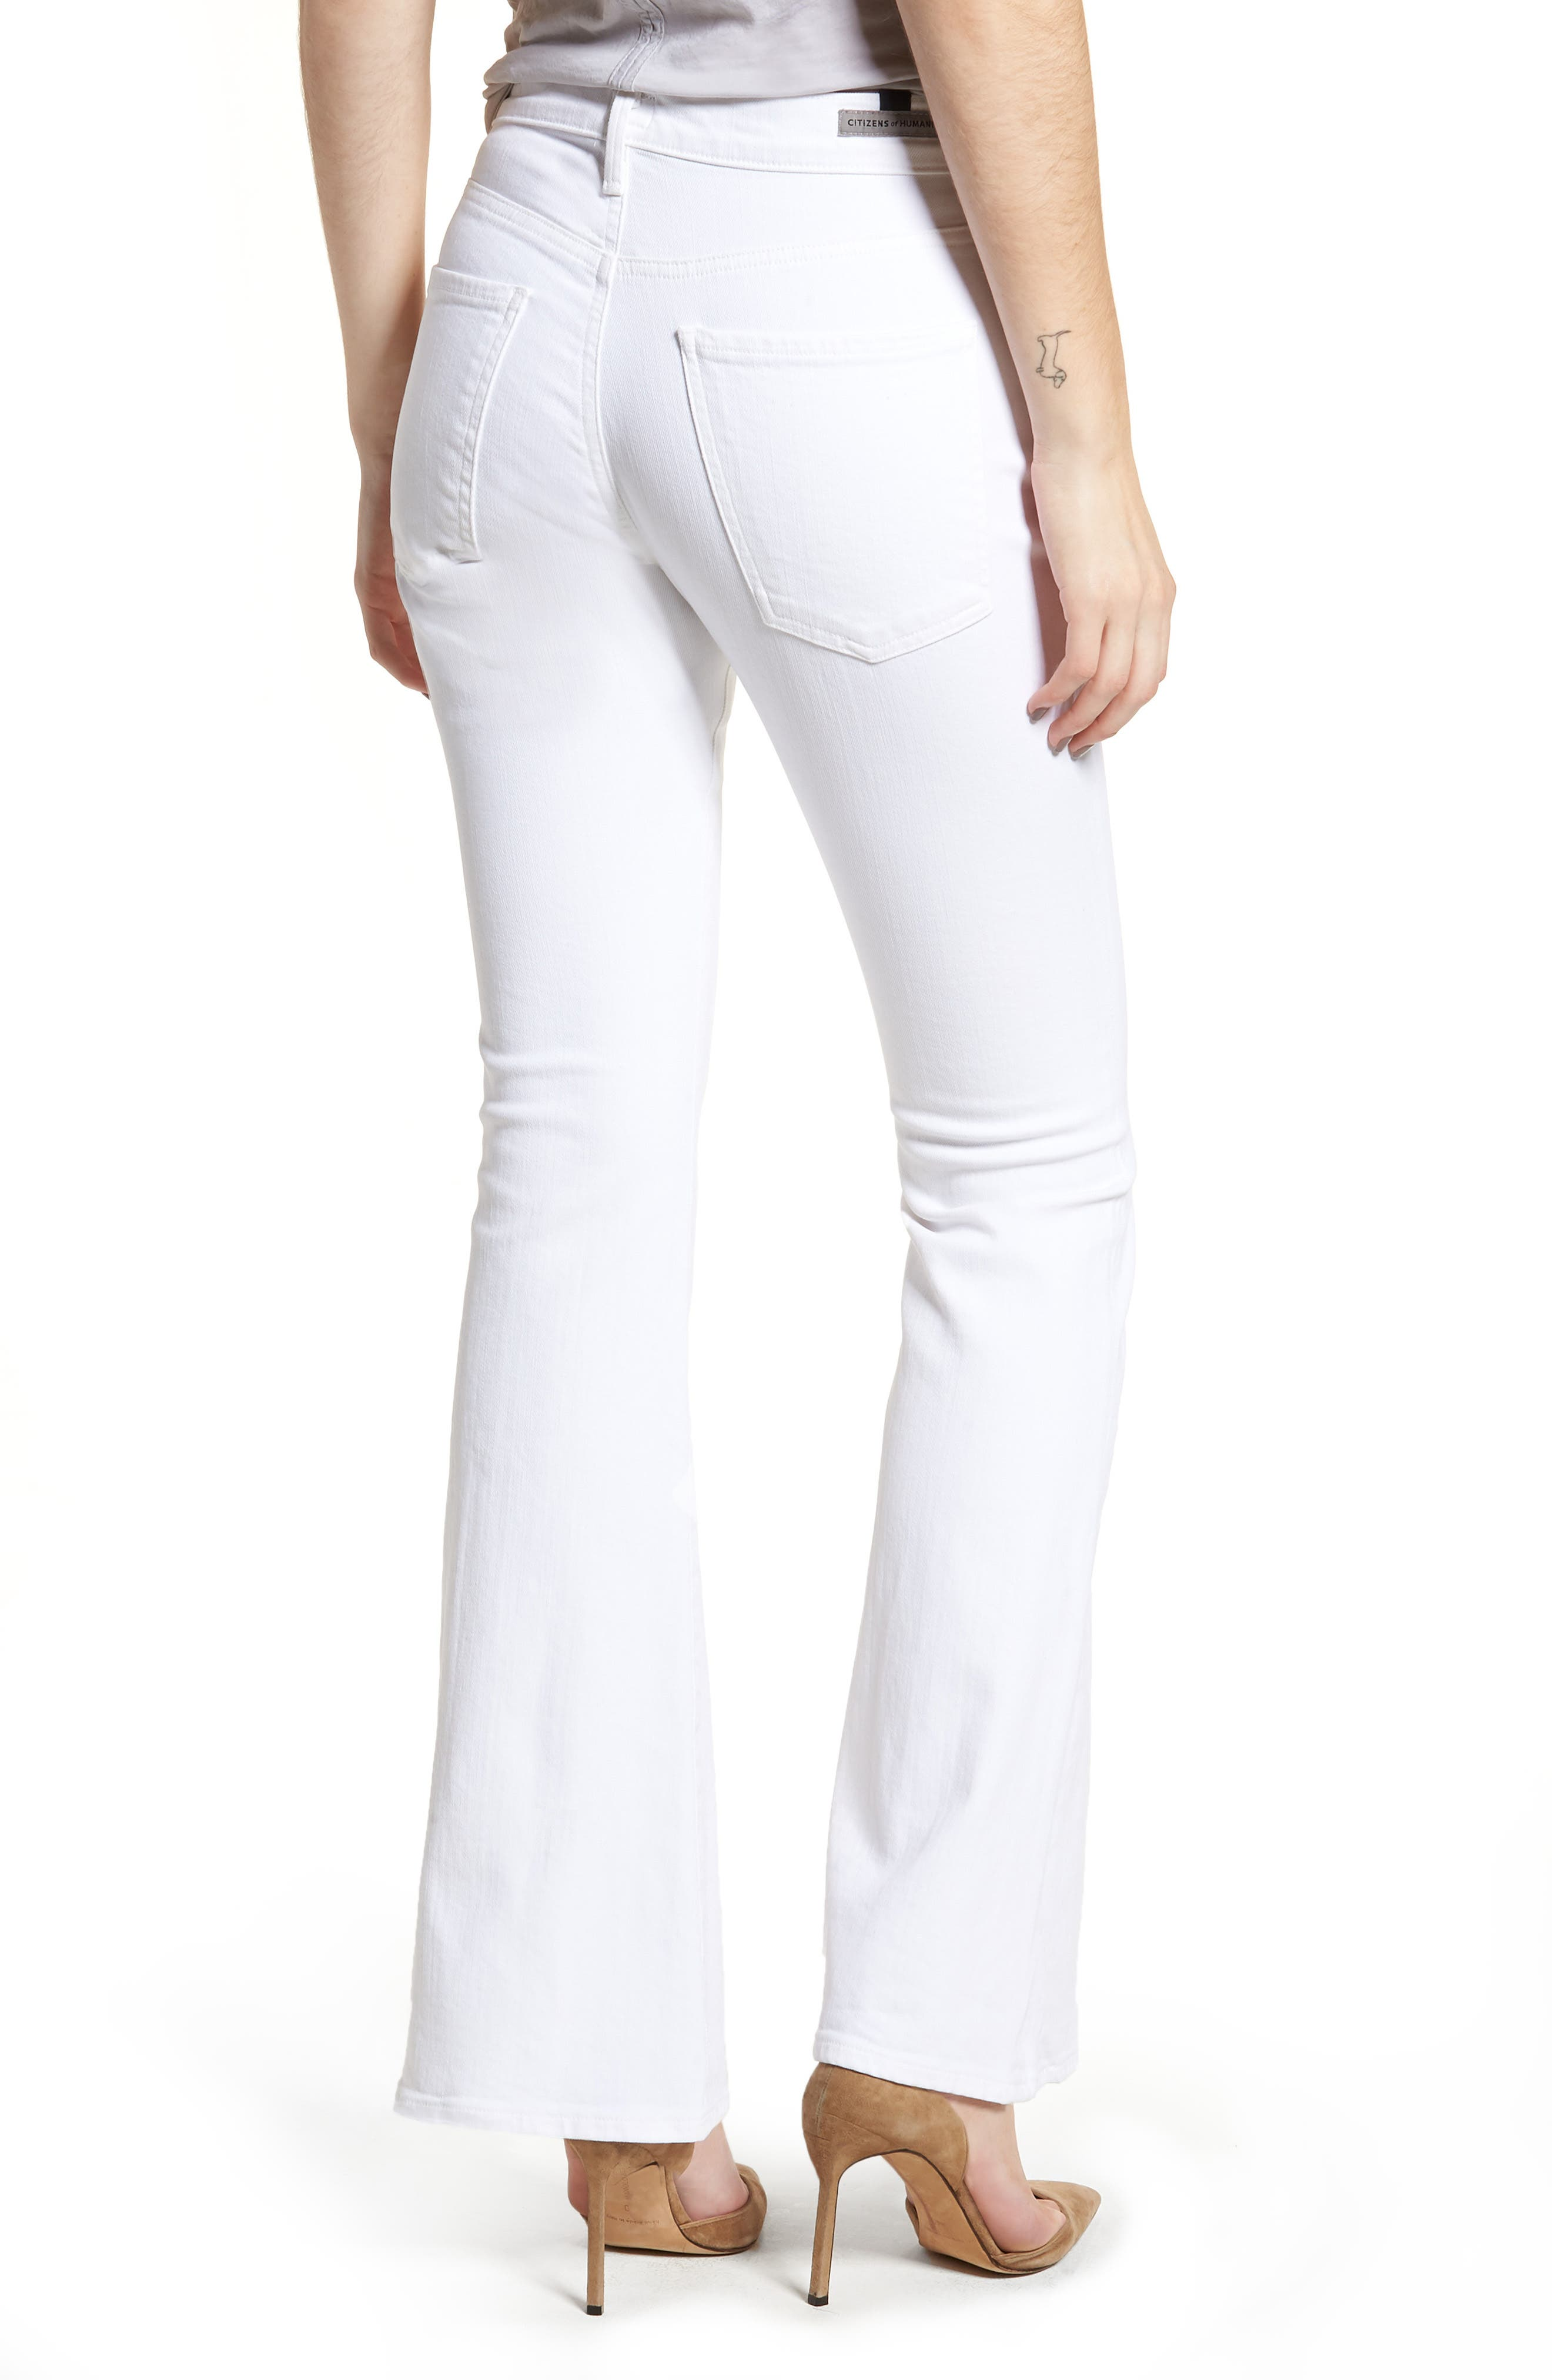 Fleetwood Flare Jeans,                             Alternate thumbnail 2, color,                             Optic White